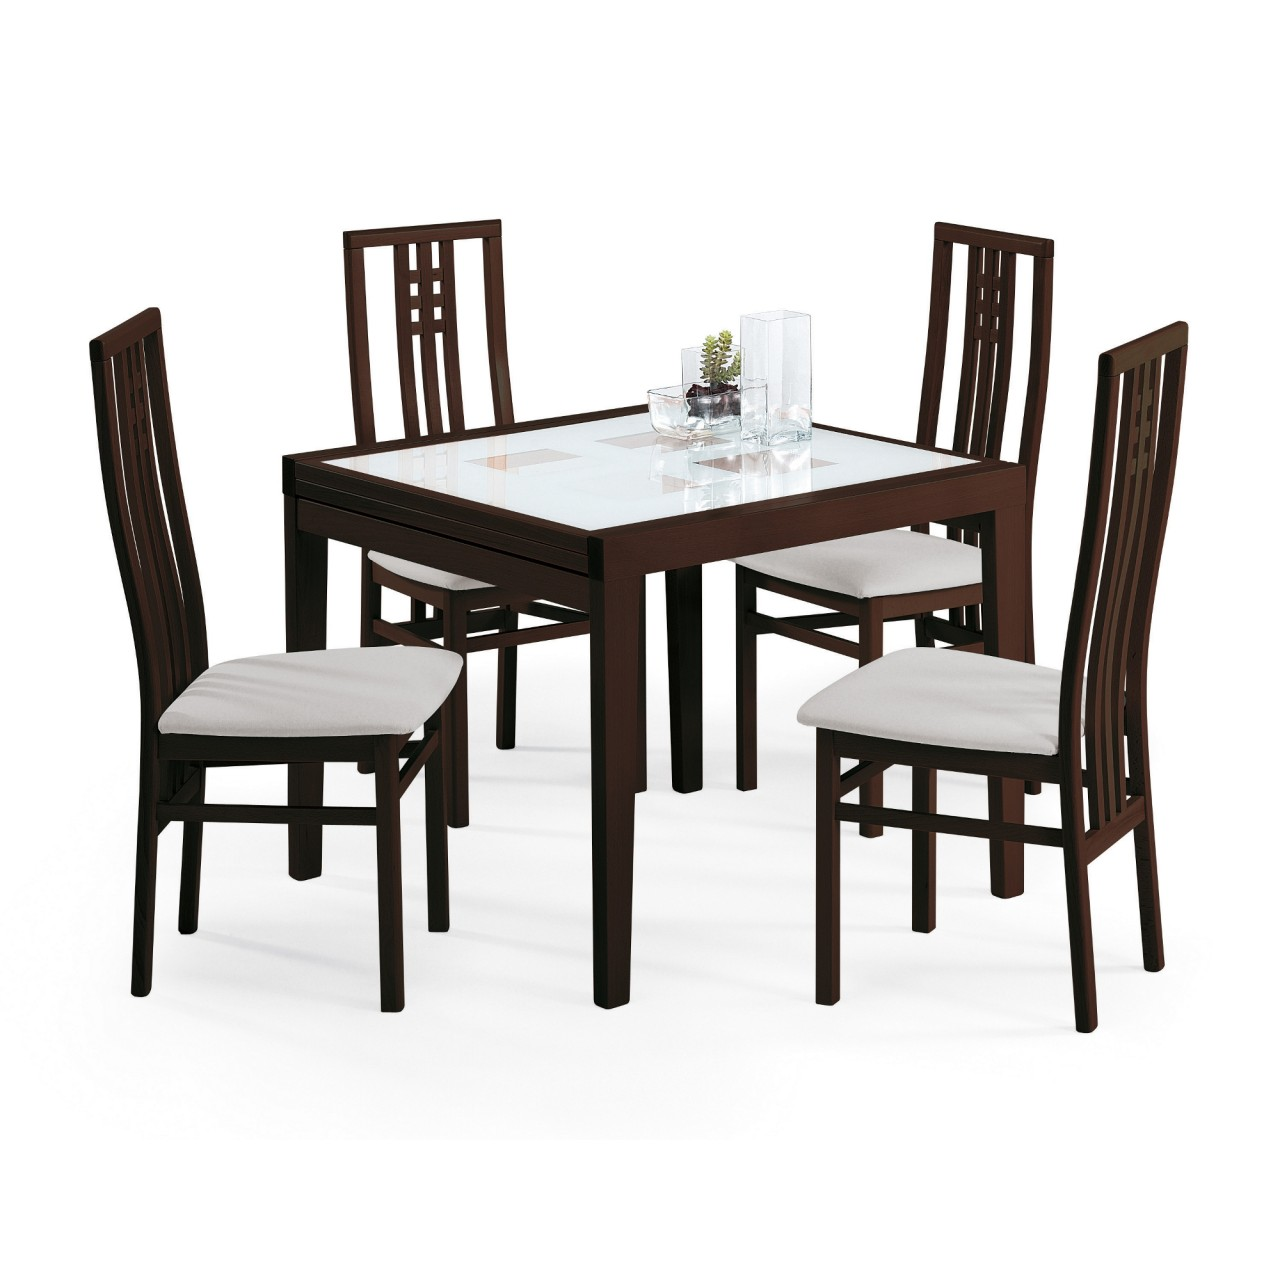 This Modern Style Dining Room Set Consists Of The Poker 120 Table And 4  (four) Scala Dining Chairs. The Table Frame Comes In A Wenge Wood Finish  And ...